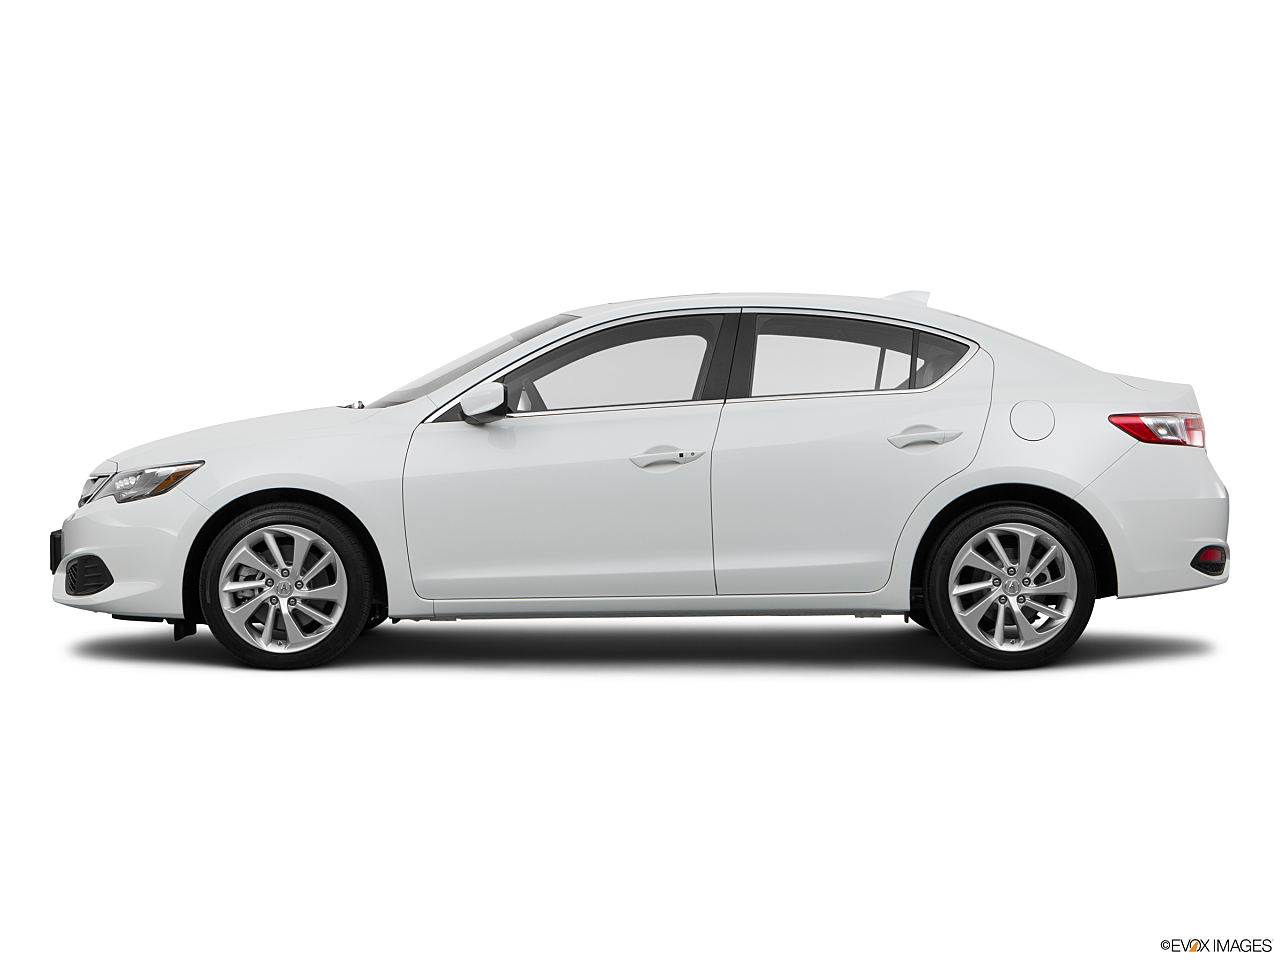 2016 Acura ILX at Dave White Acura of Sylvania, OH. The dealership has not provided a description for the image.